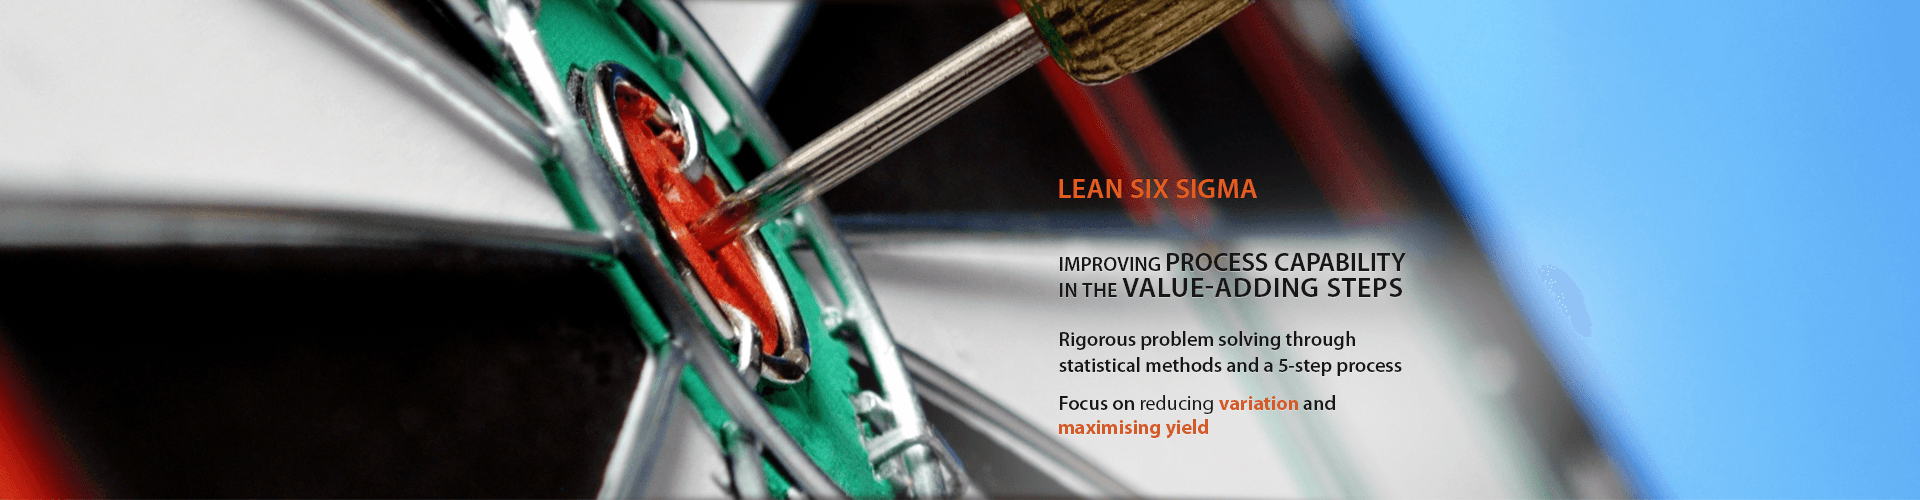 Lean Six Sigma - Improving process capability in the value-adding steps